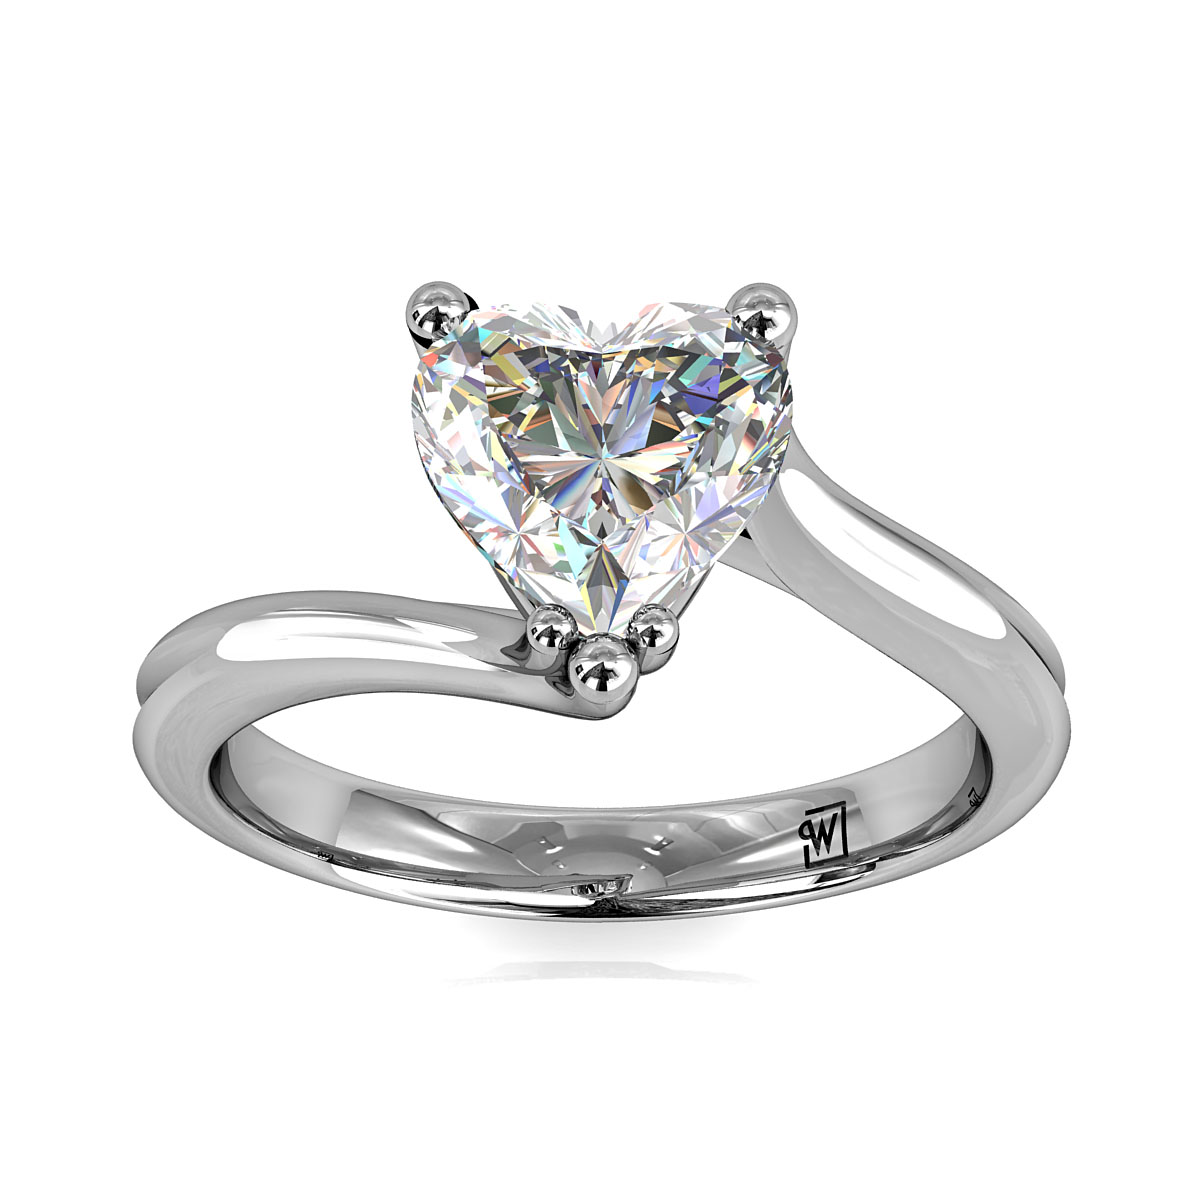 Heart Shape Solitaire Engagment Ring, Semi Bezel Set on a Plain Polished Band.